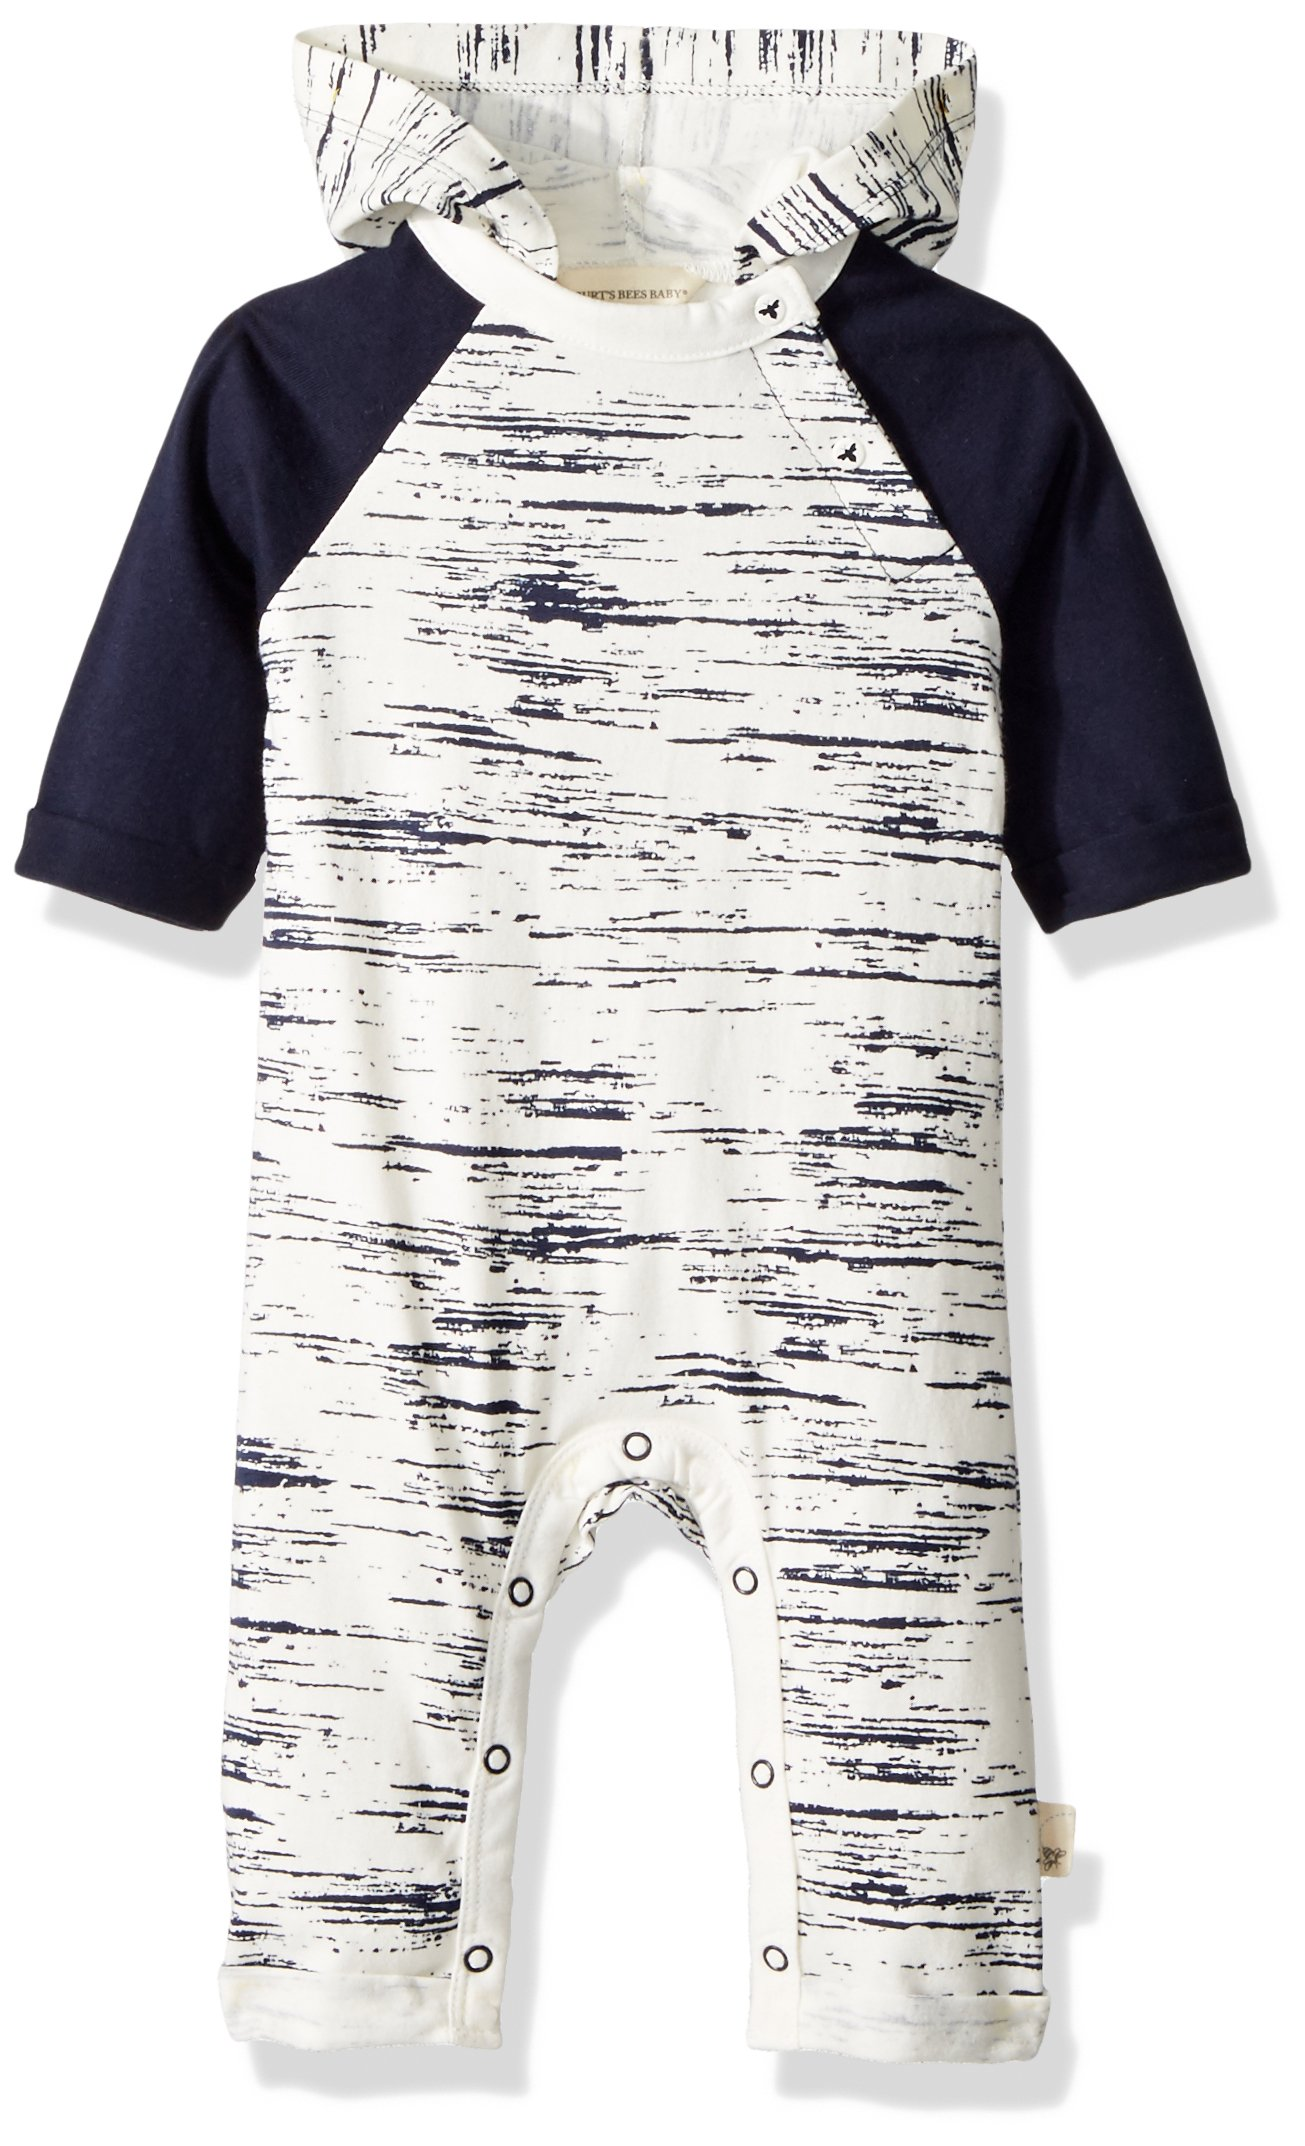 Burt's Bees Baby Boys' Romper Jumpsuit, 100% Organic Cotton One-Piece Coverall, Midnight Peering Light Hooded, 18 Months